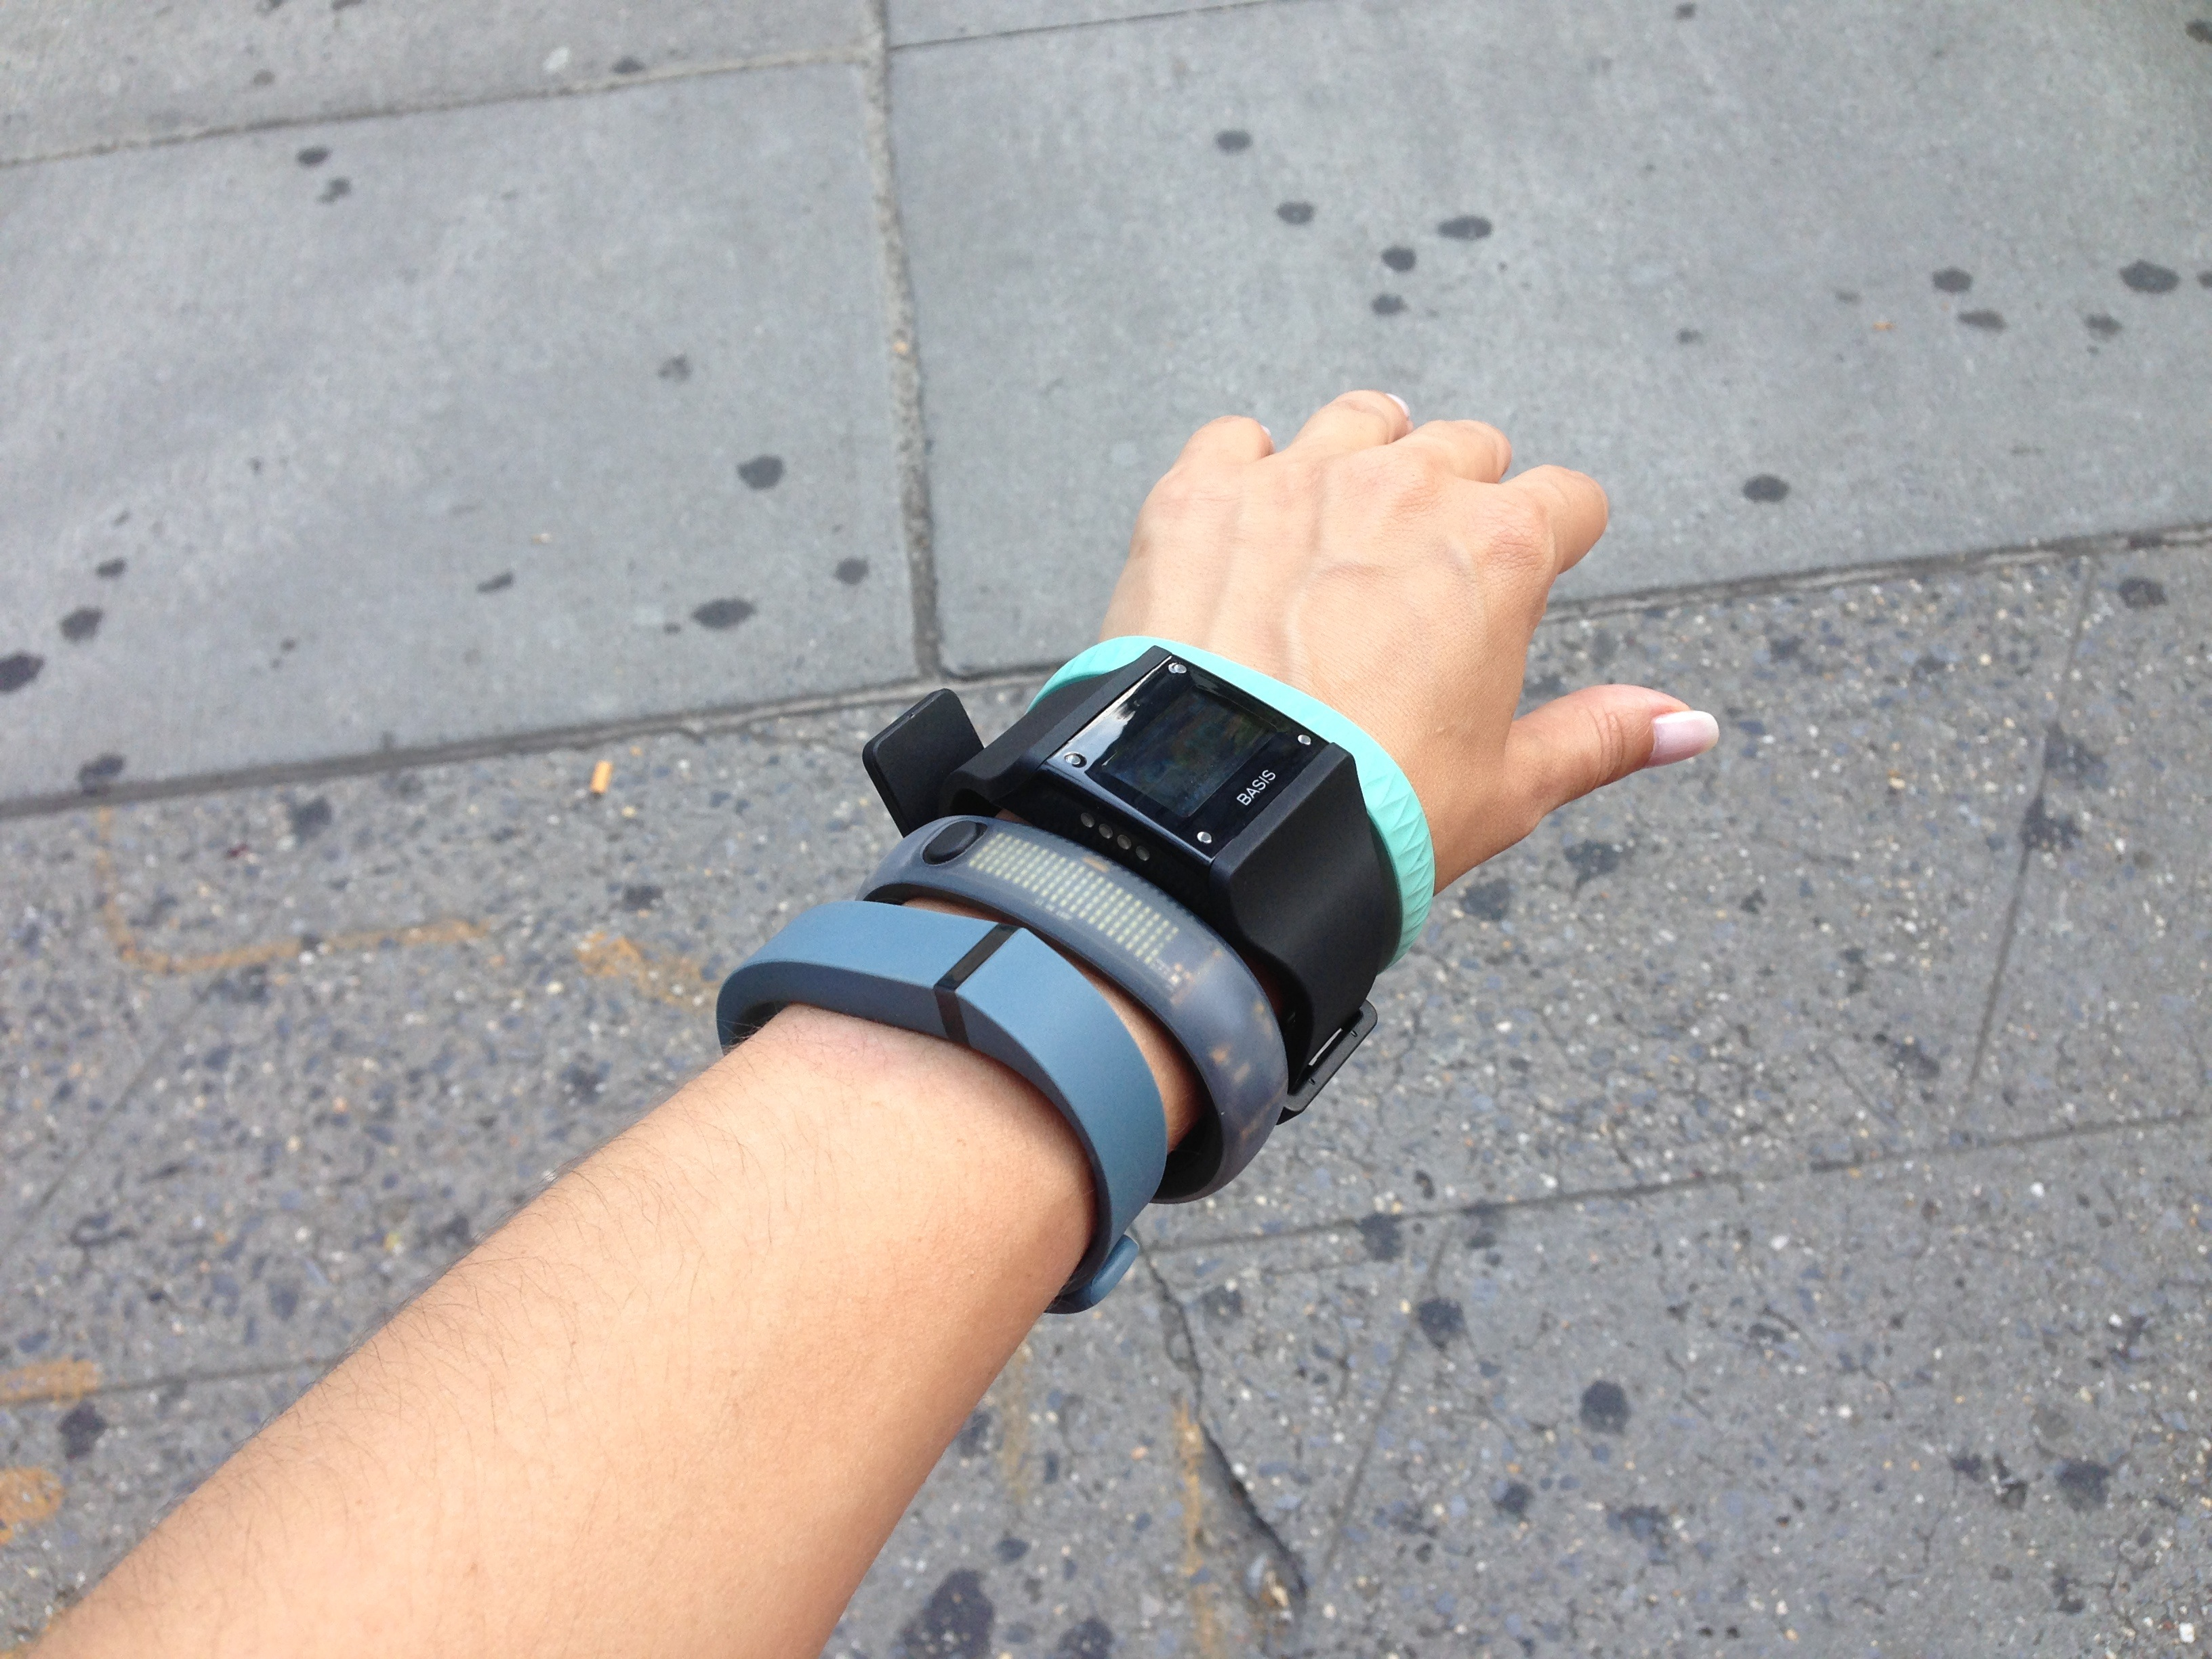 New iPhones, Microsoft's Q4 and the Fitbit-Jawbone Showdown